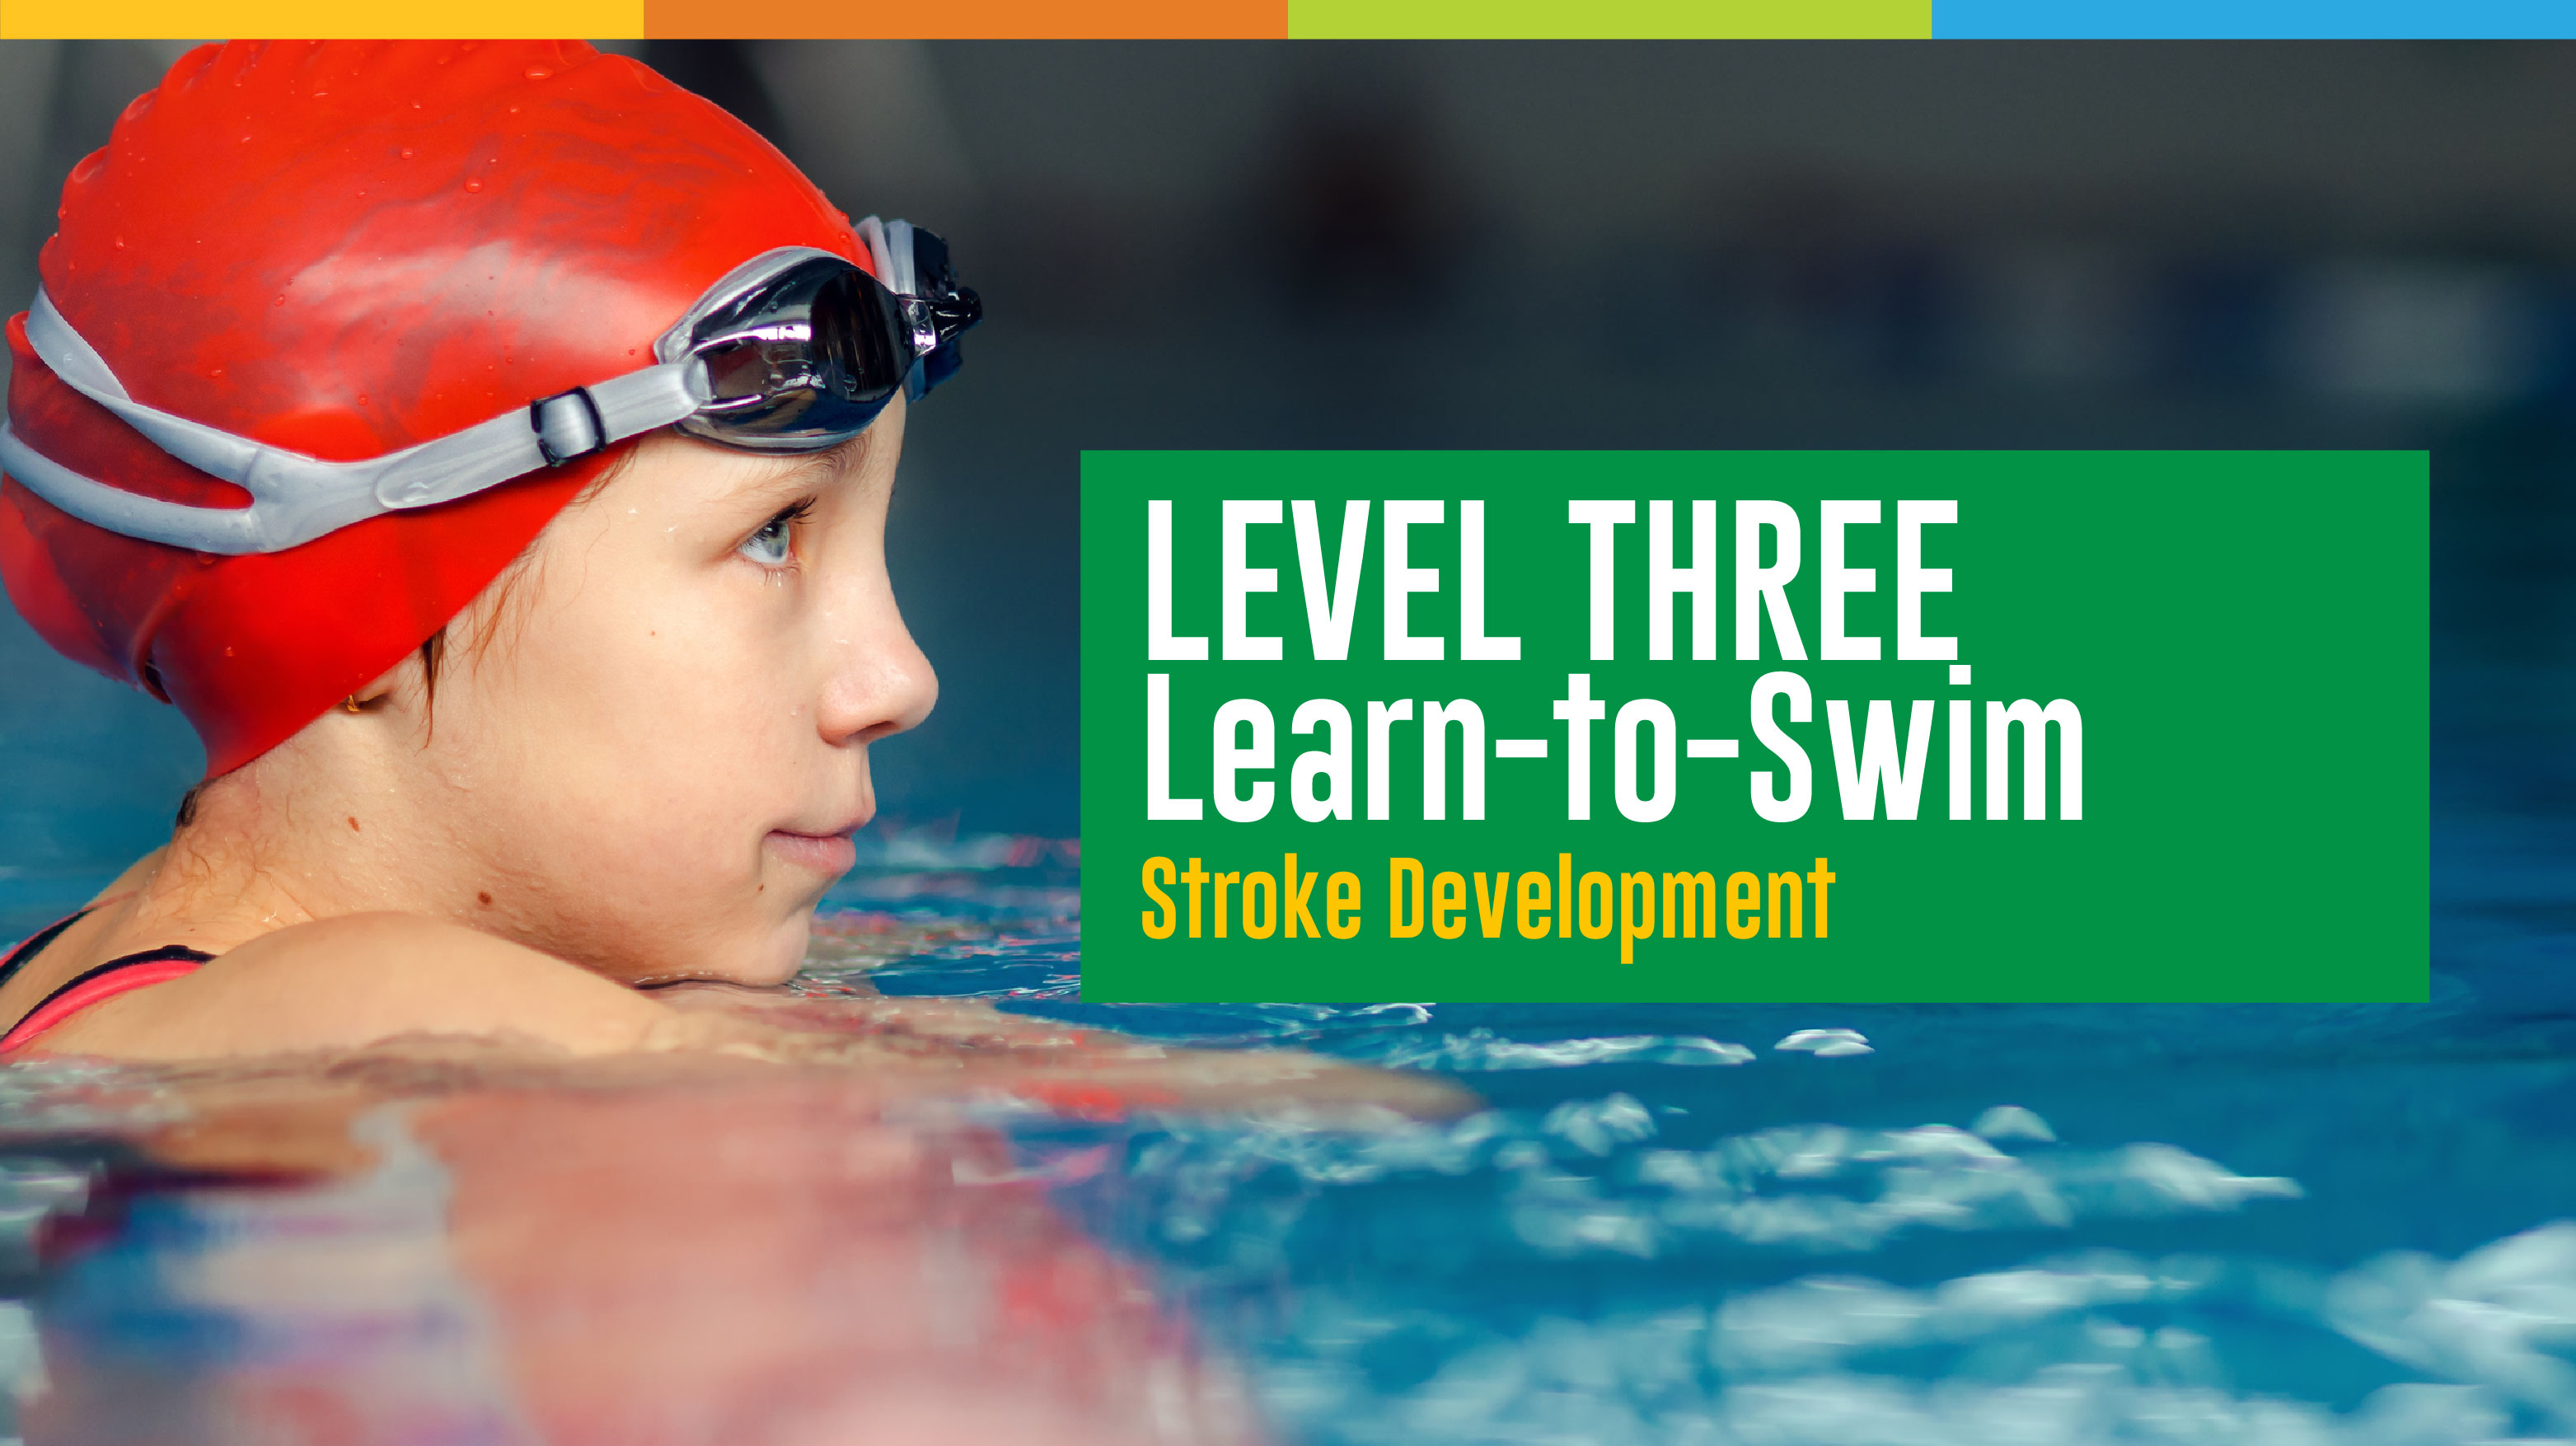 Learn to Swim - Level 3